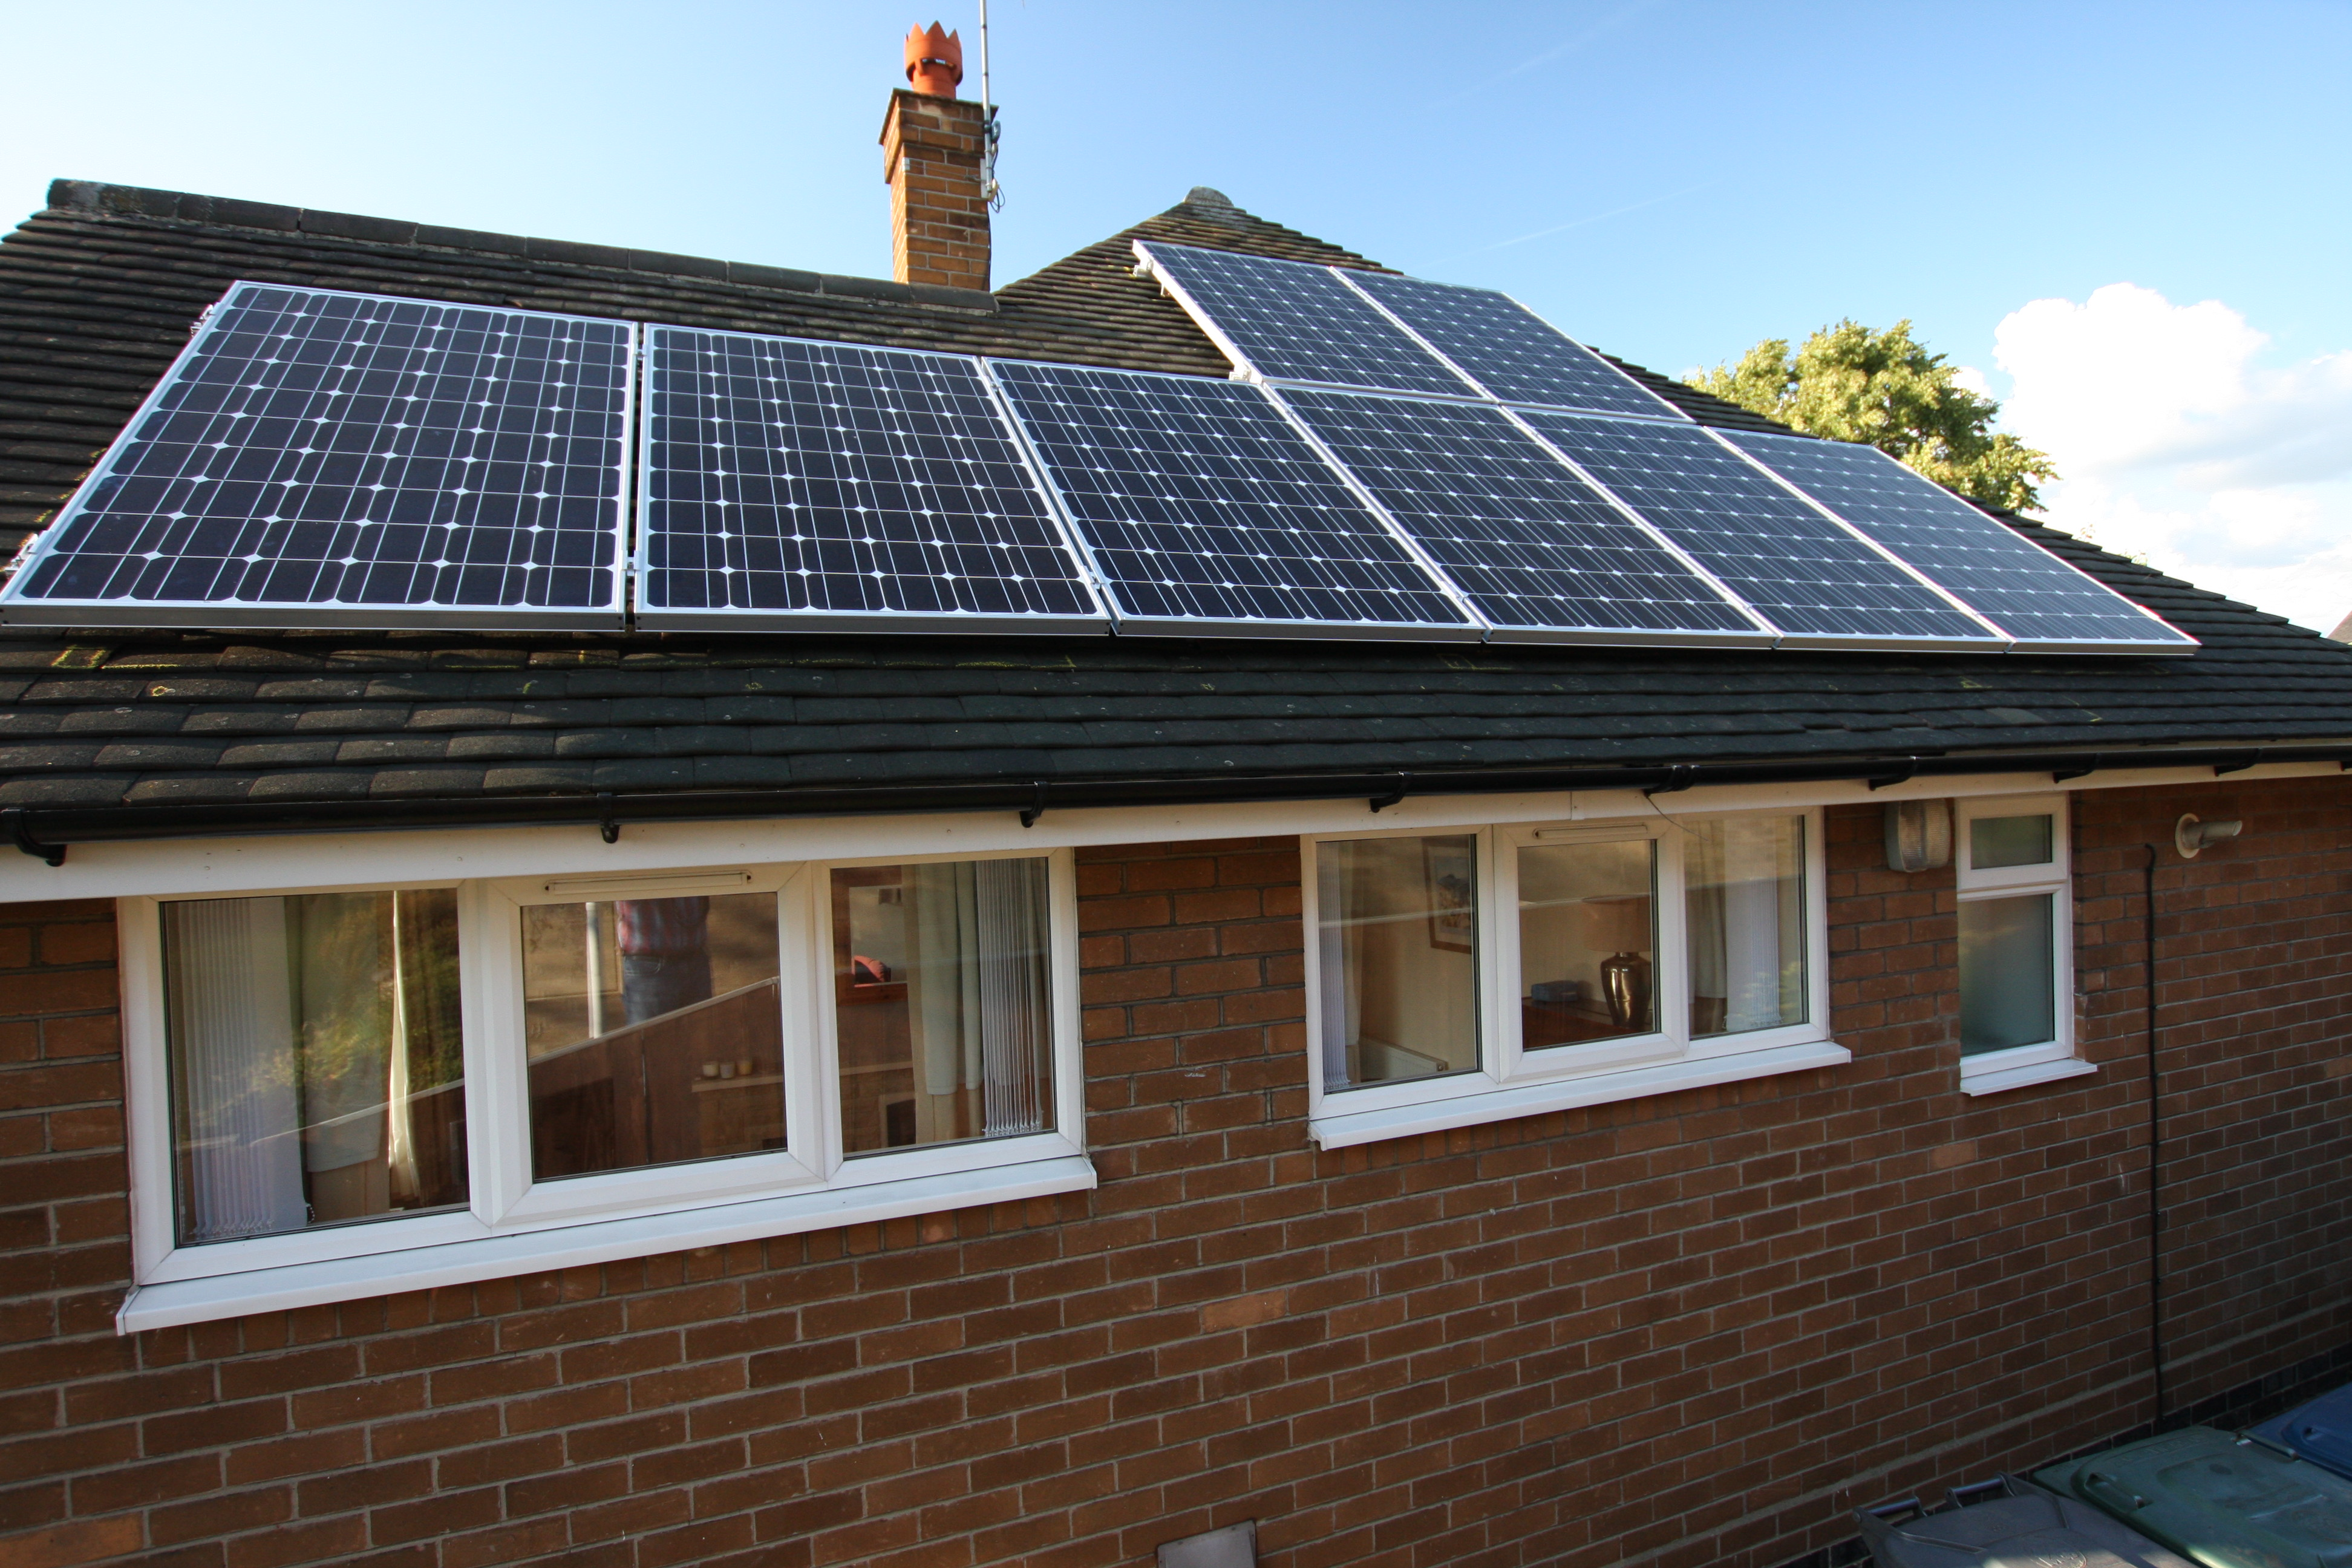 Solar Panels Fitted Onto Flat Roofs Using Quot Ballast Trays